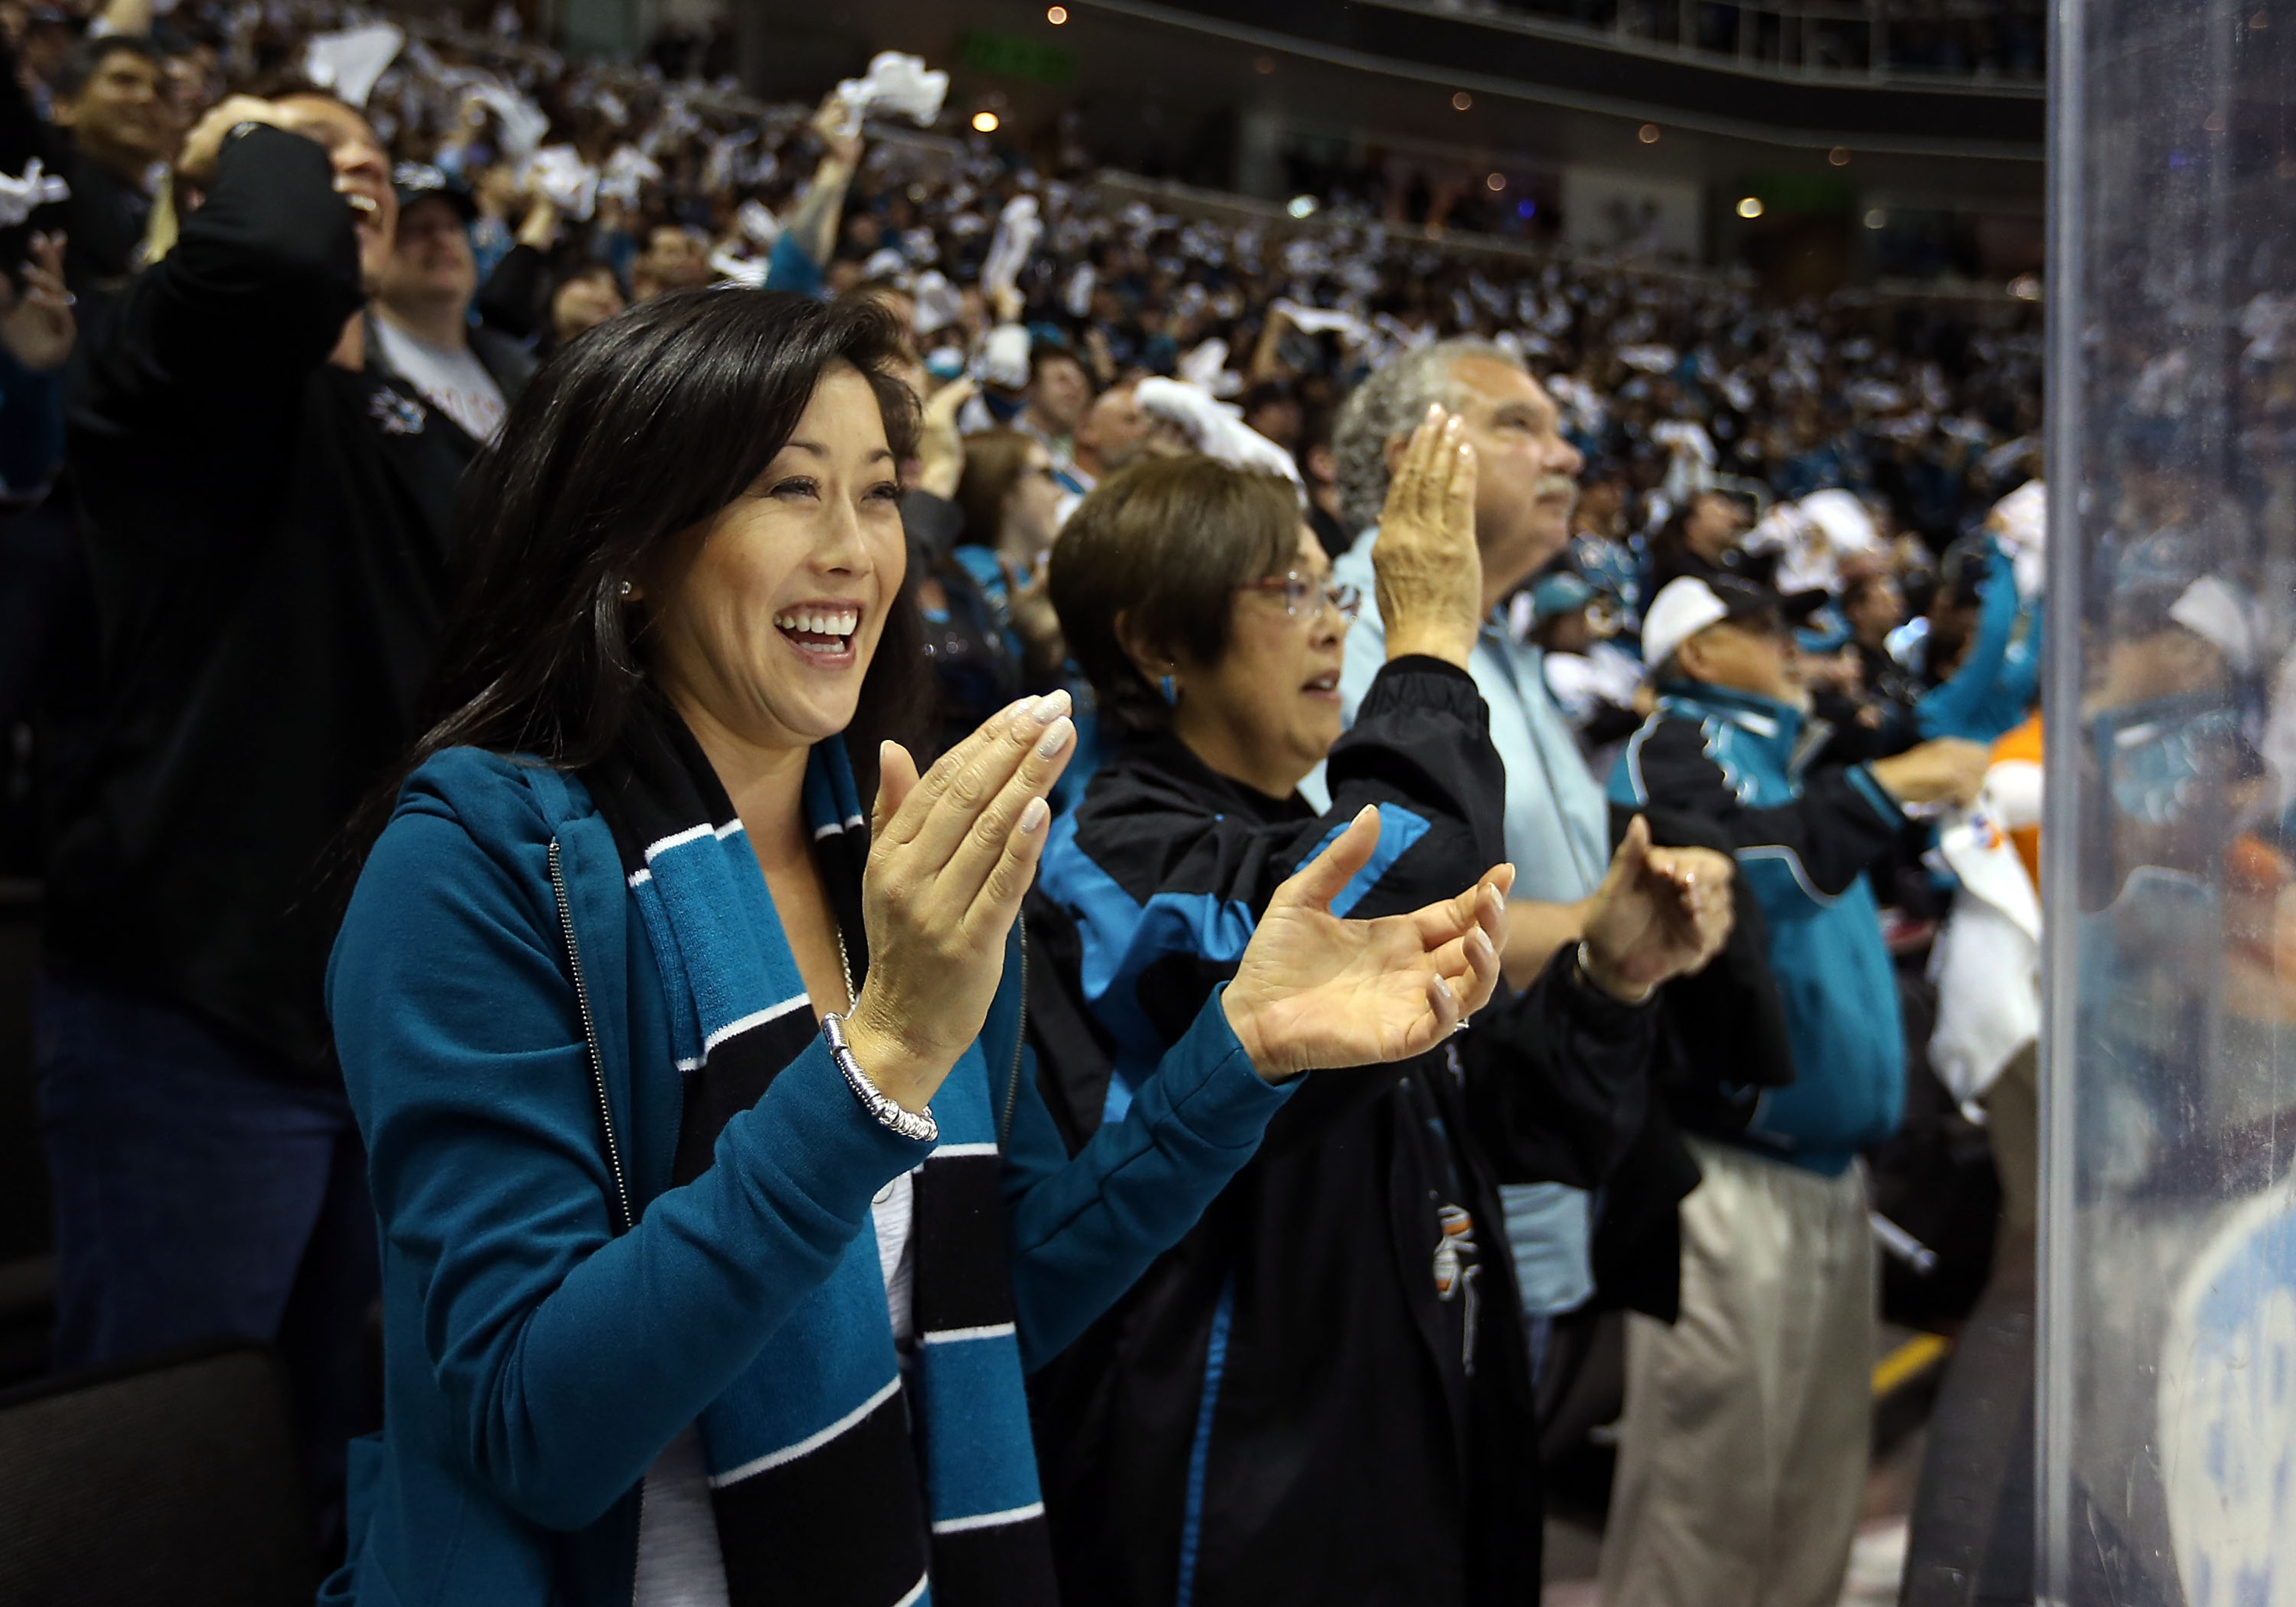 American gold medalist / hero Kristi Yamaguch and the Sharks faithful erupt after a perfectly executed defensive zone faceoff win zone exit.